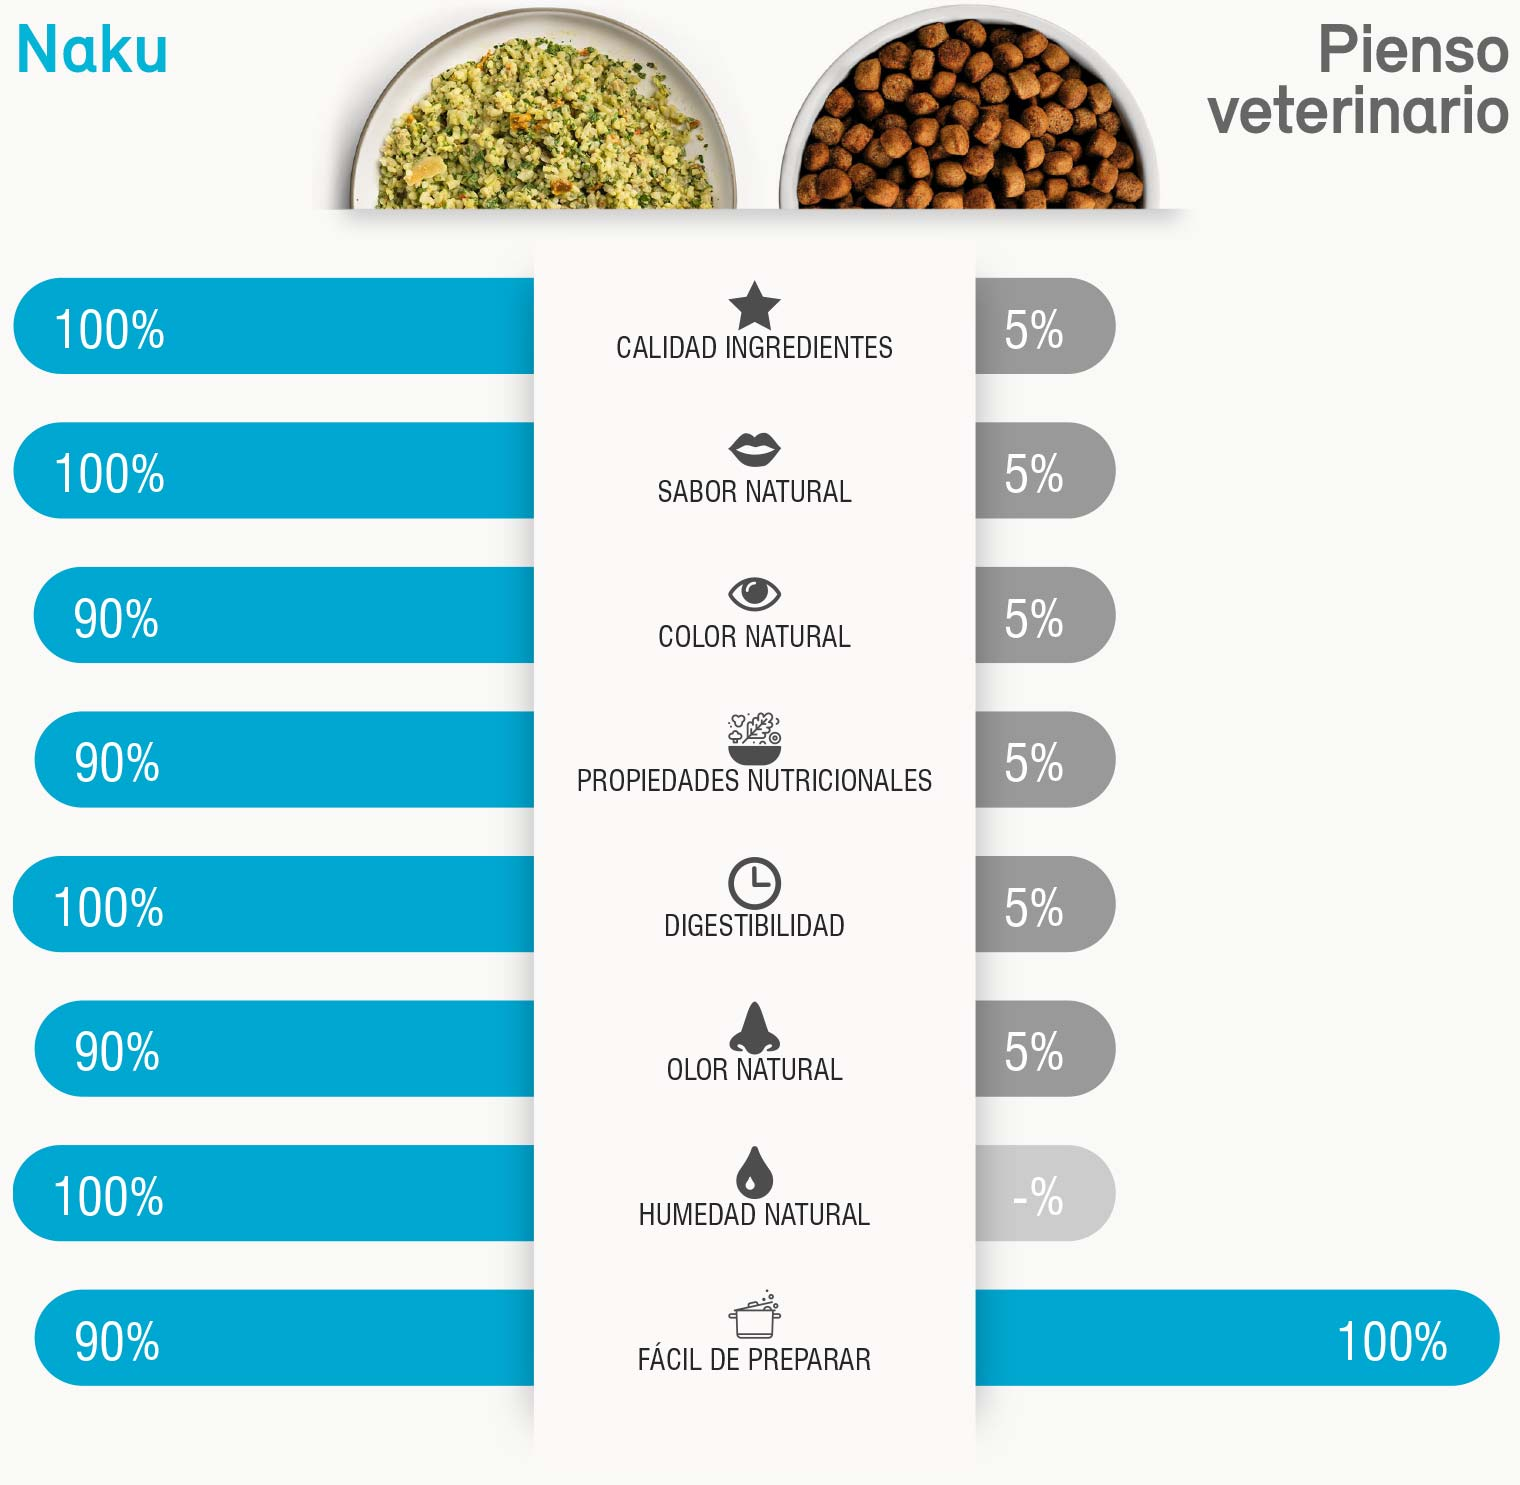 Naku VS Pienso veterinario